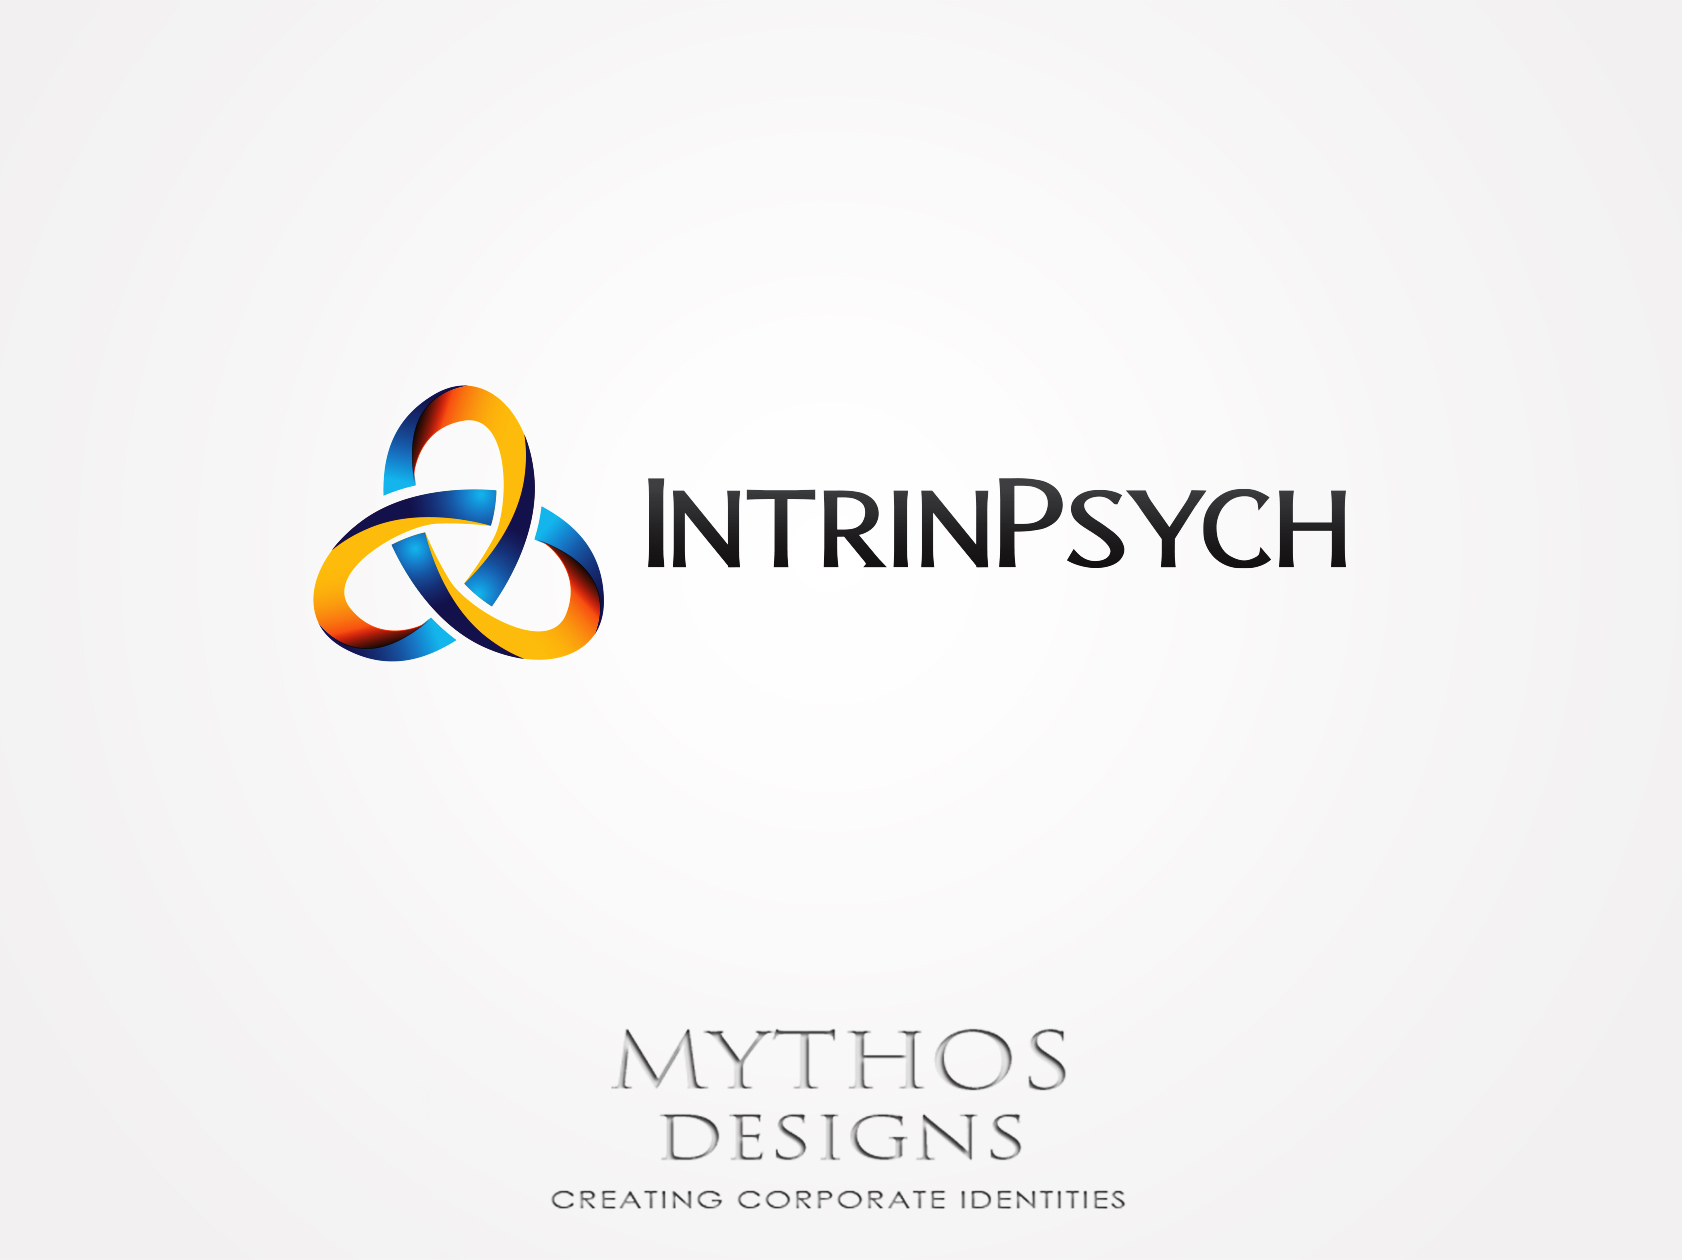 Logo Design by Mythos Designs - Entry No. 147 in the Logo Design Contest New Logo Design for IntrinPsych.